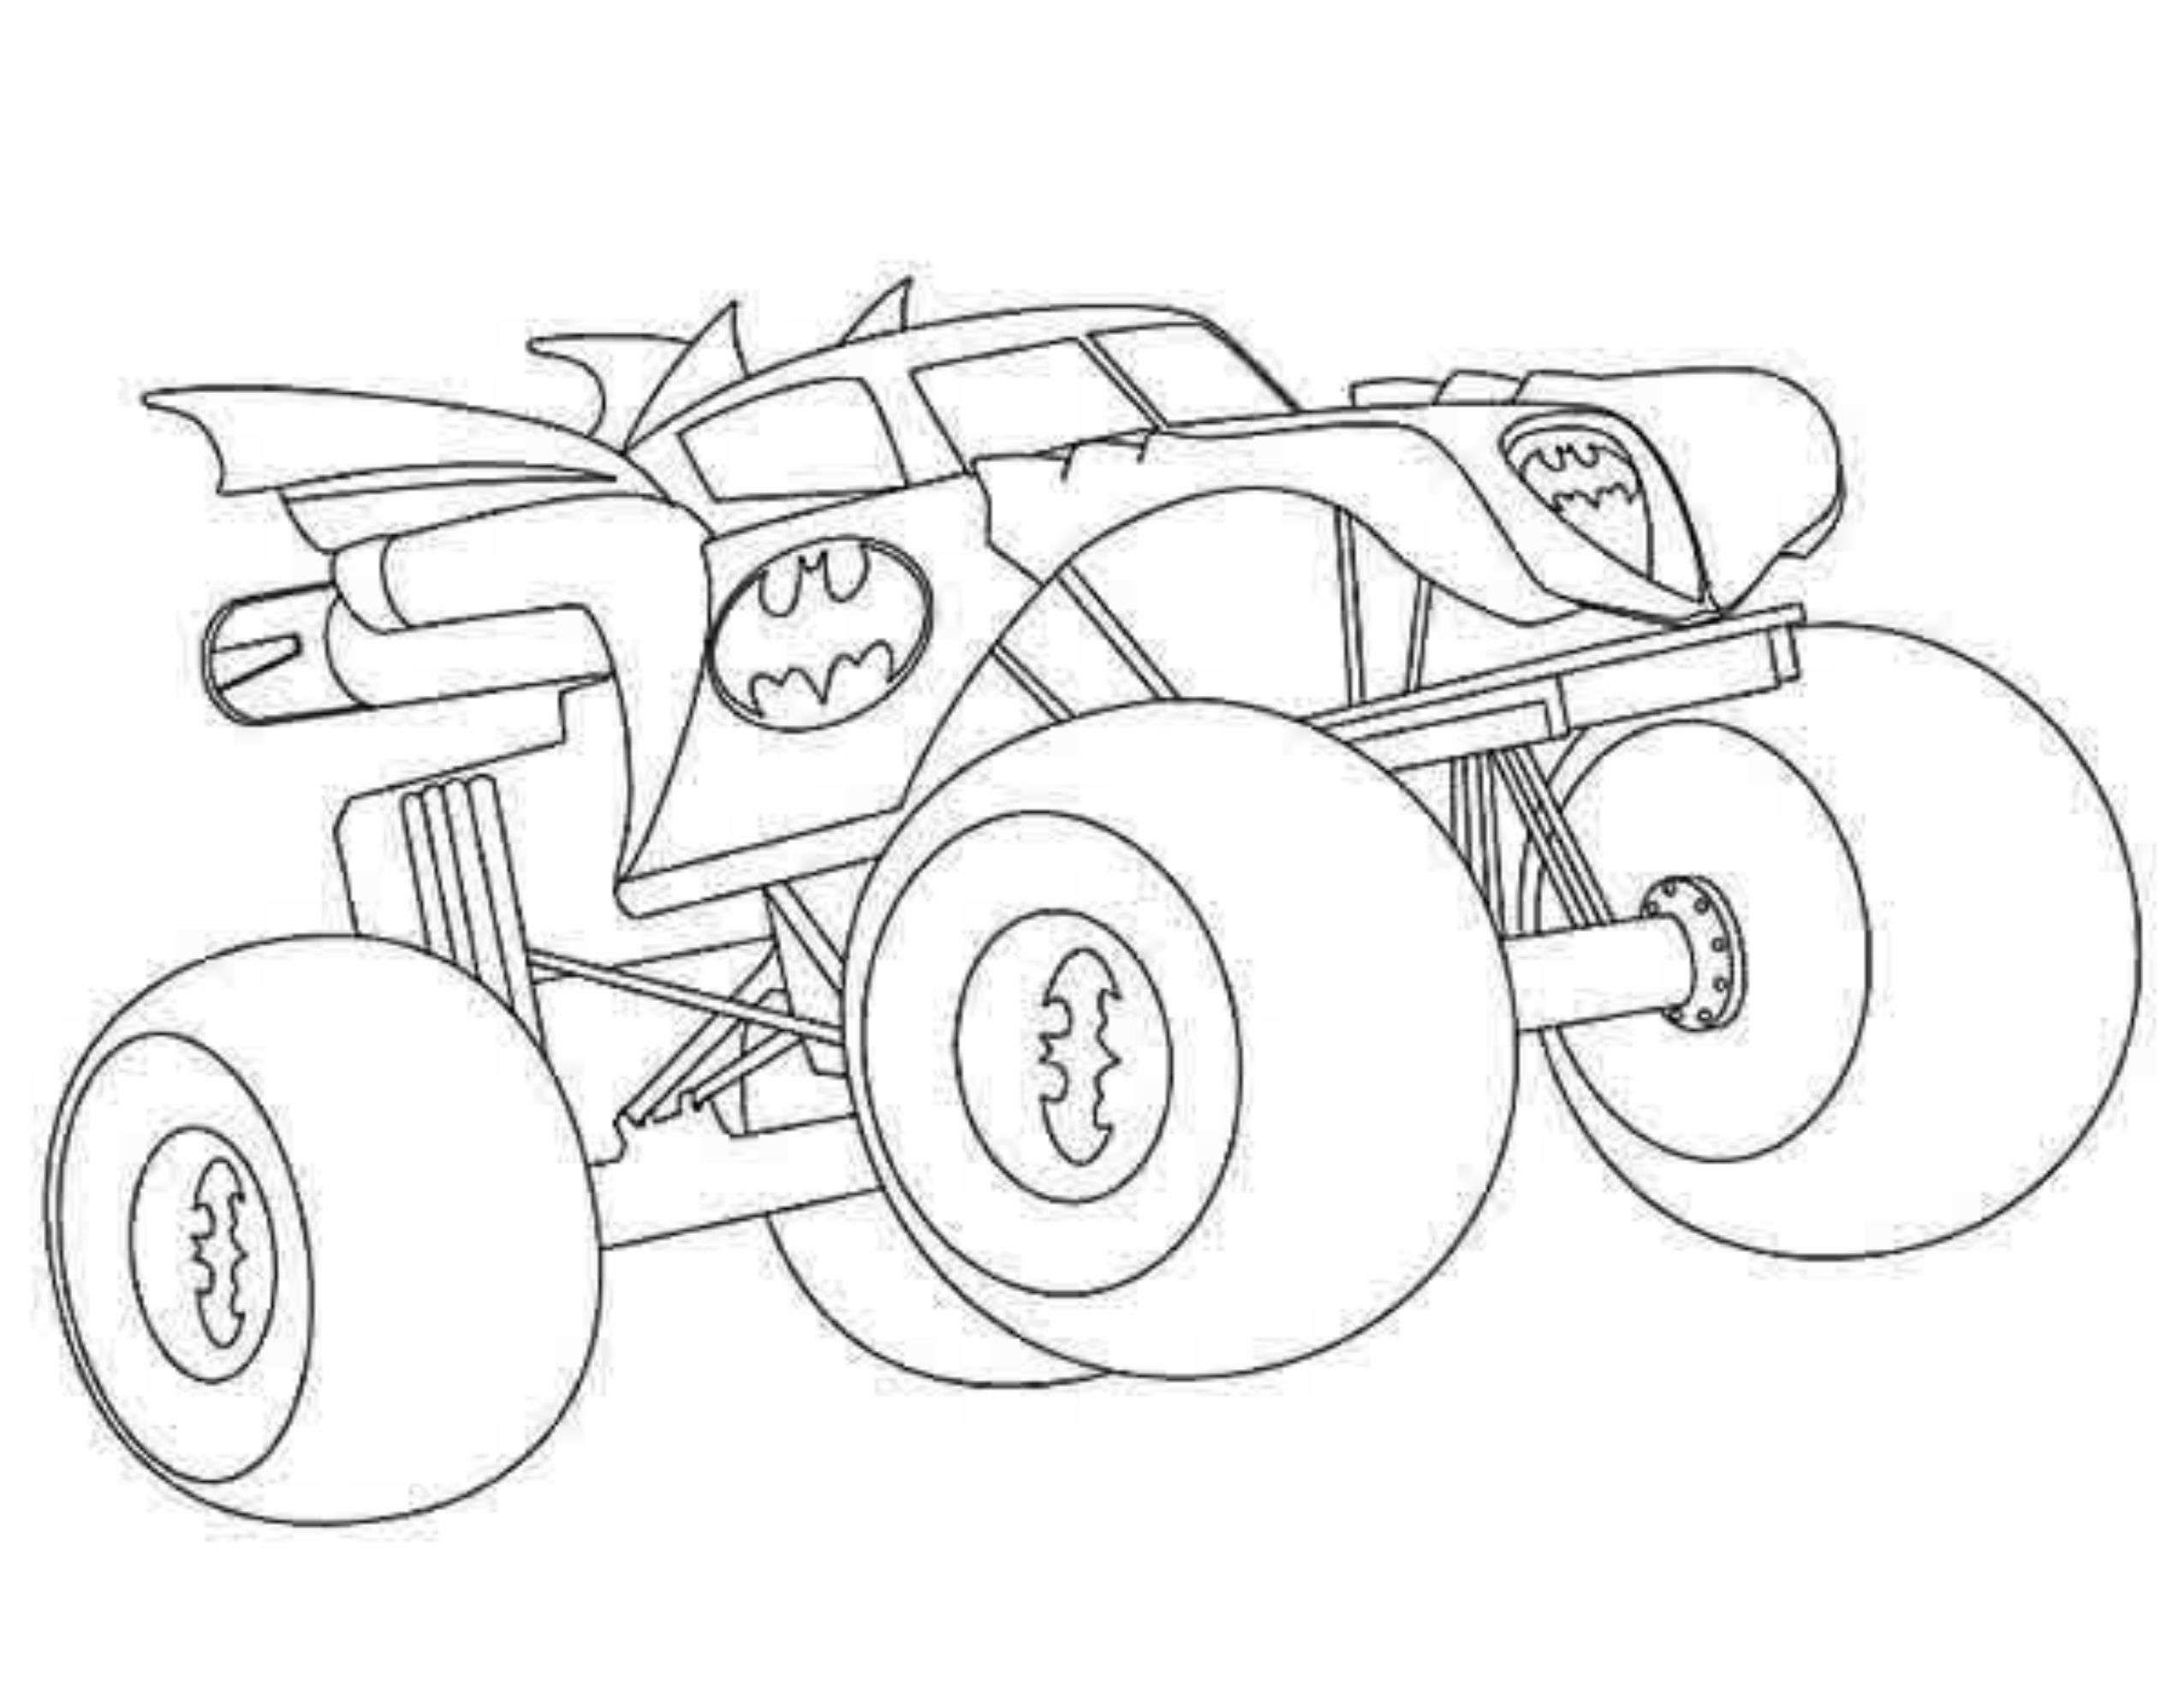 Coloring pages by numbers for kids of trucks - Hot Wheels Coloring Pages Monster Truck Coloring Pages Wheels